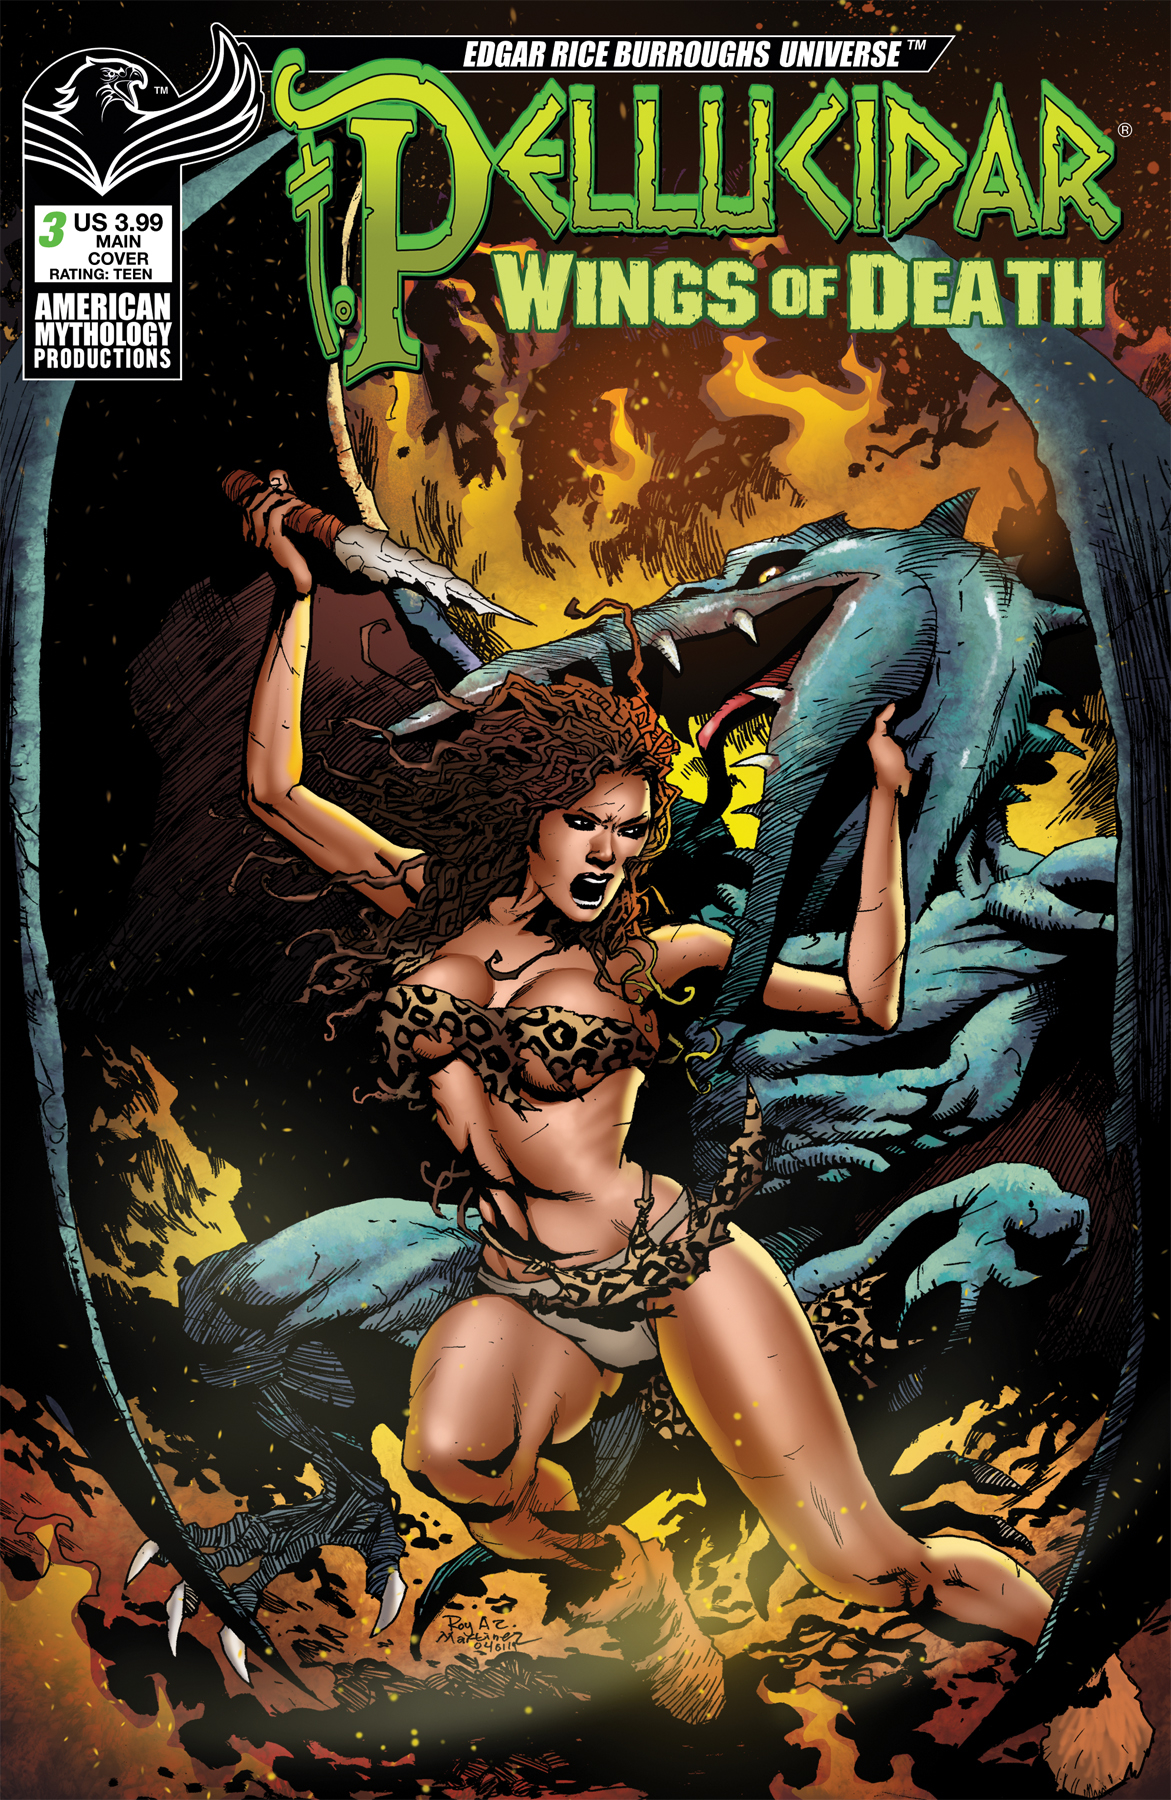 PELLUCIDAR WINGS OF DEATH #3 CVR A MARTINEZ